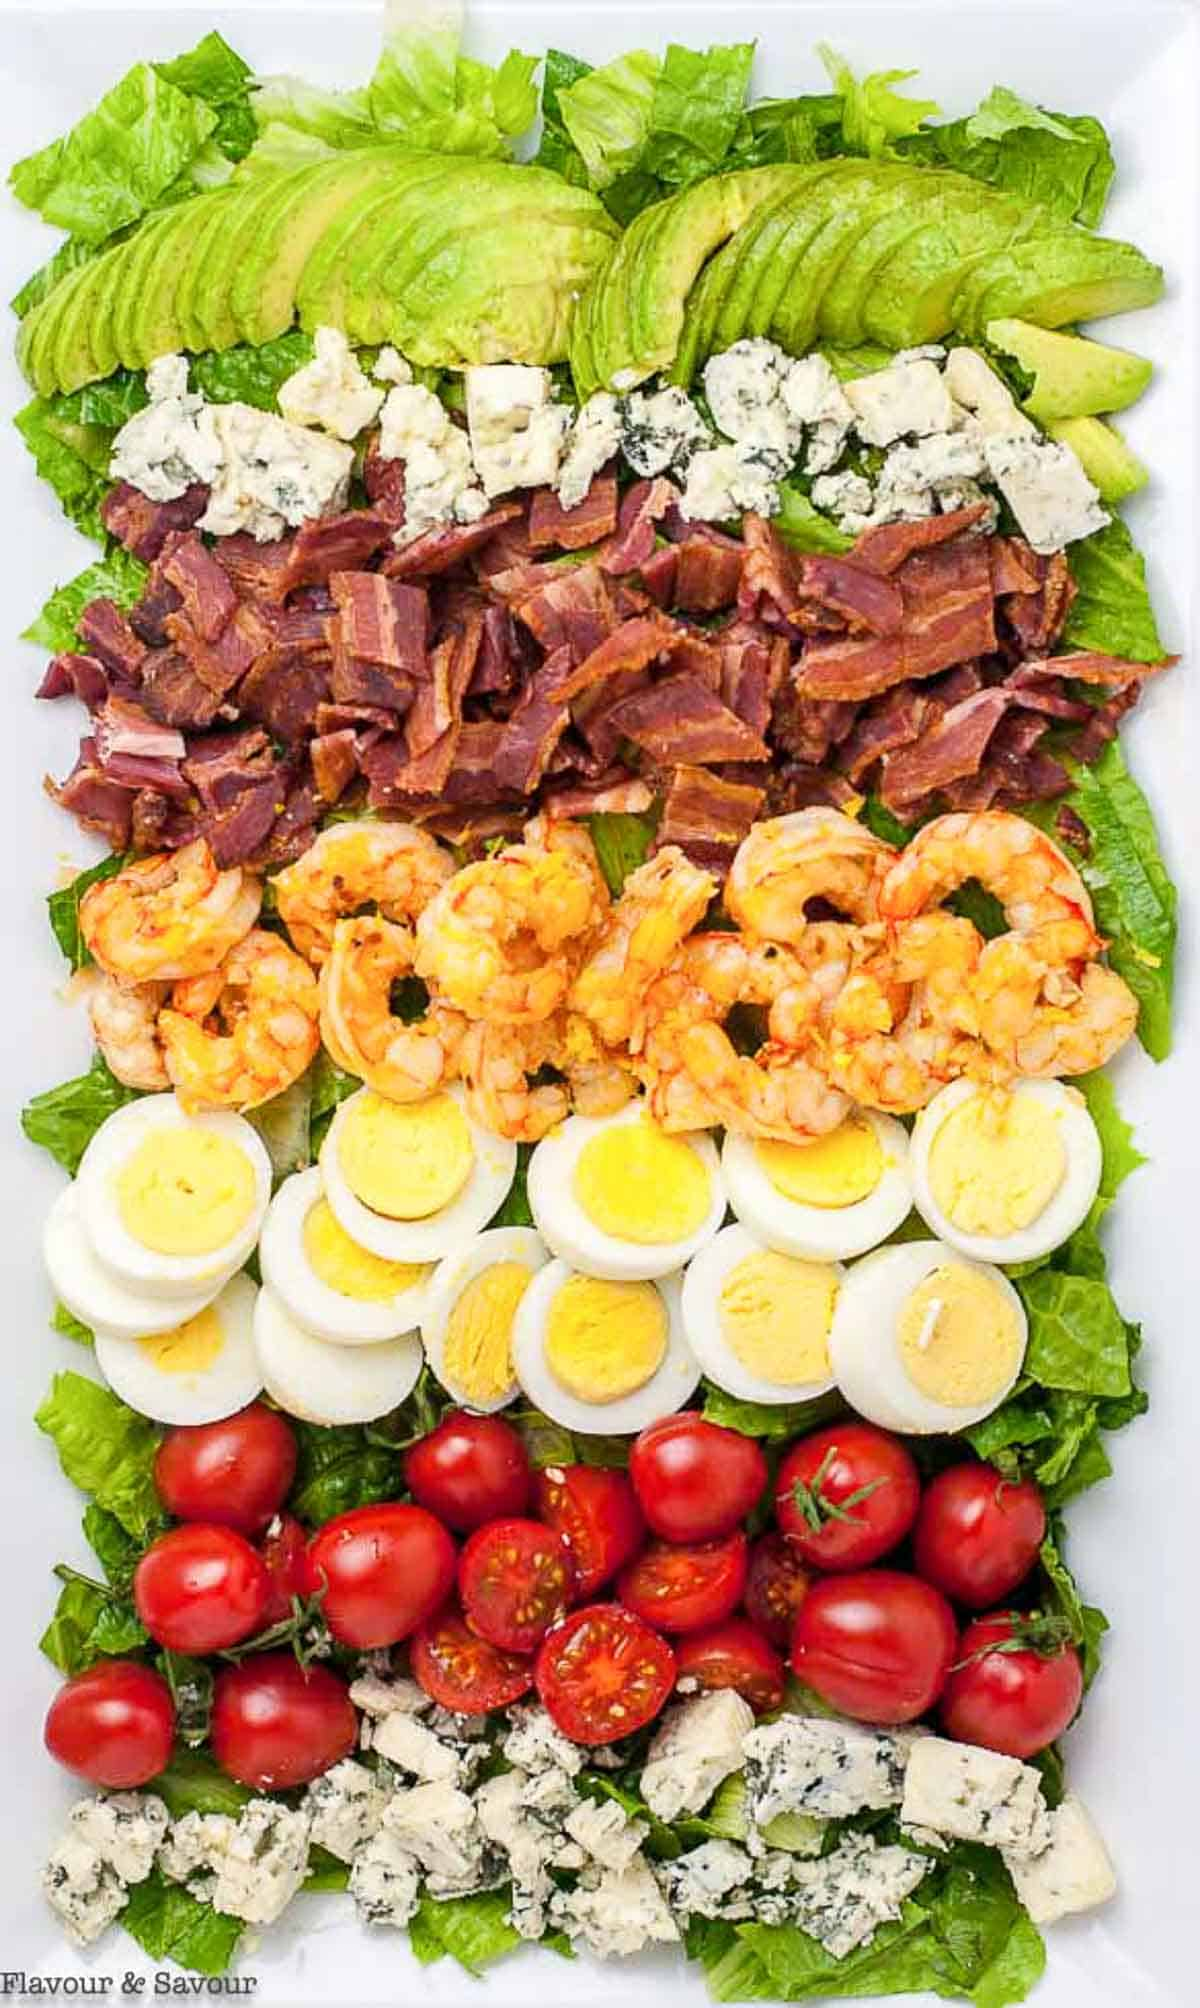 Overhead view of Shrimp Cobb Salad showing rows of ingredients